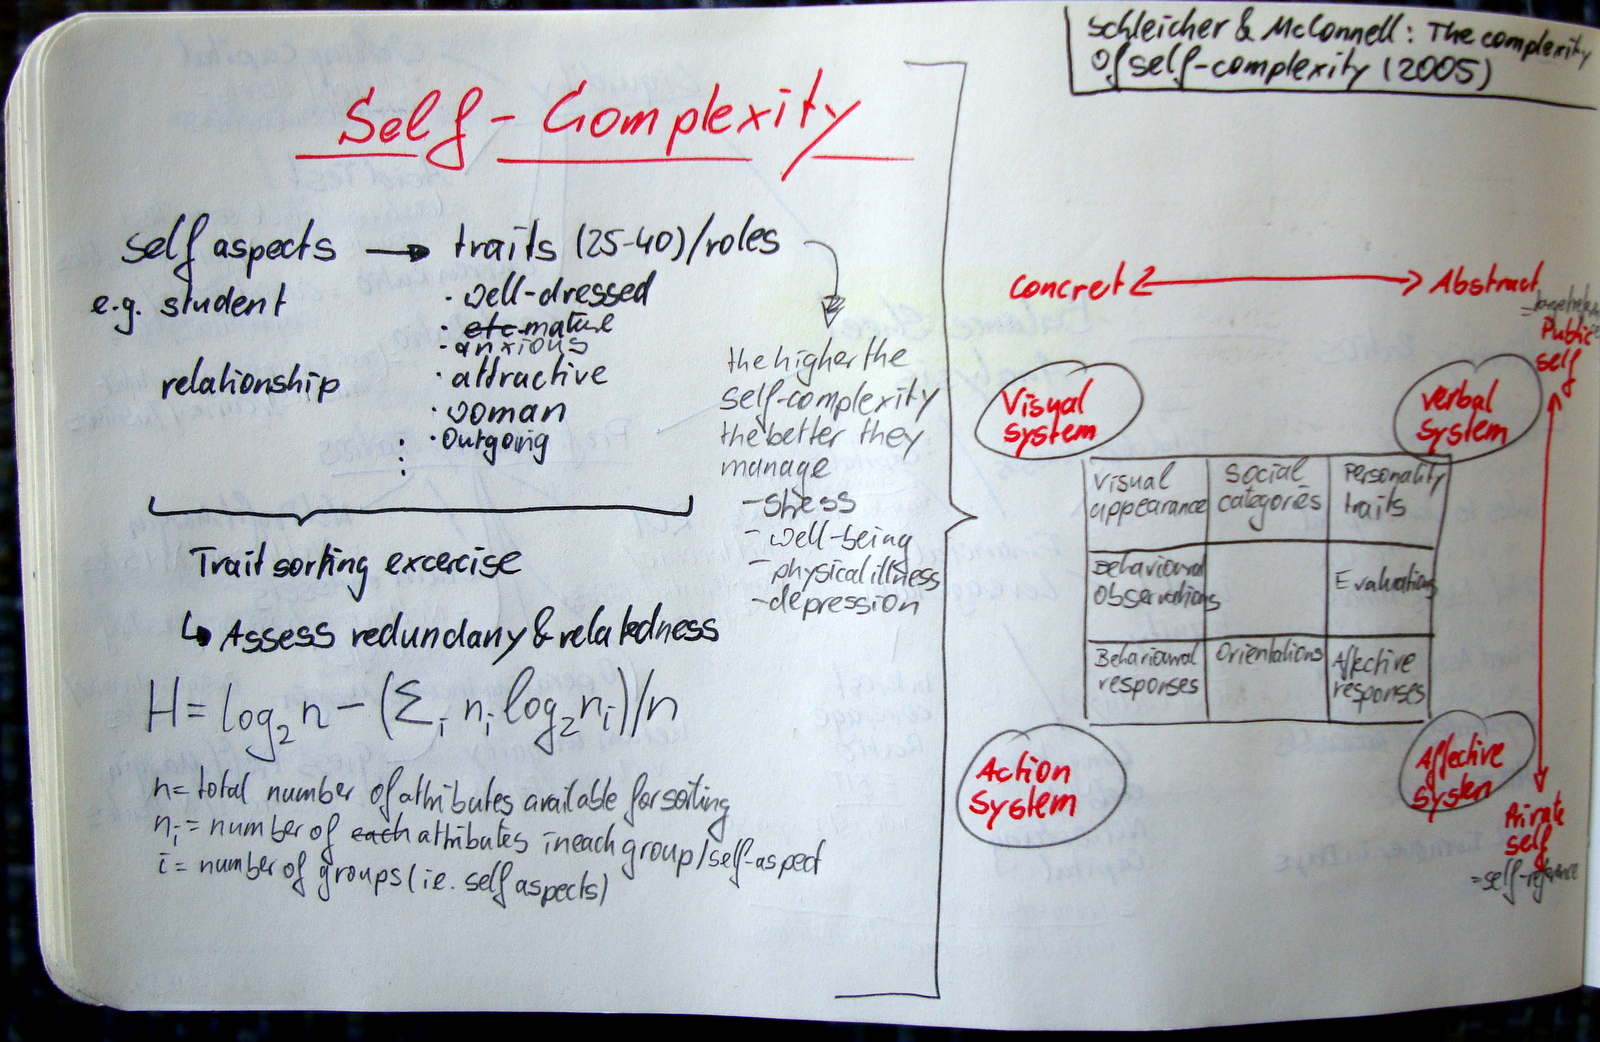 The Complexity of Self–Complexity: An Associated Systems Theory Approach (Schleicher & McConnell, 2005)